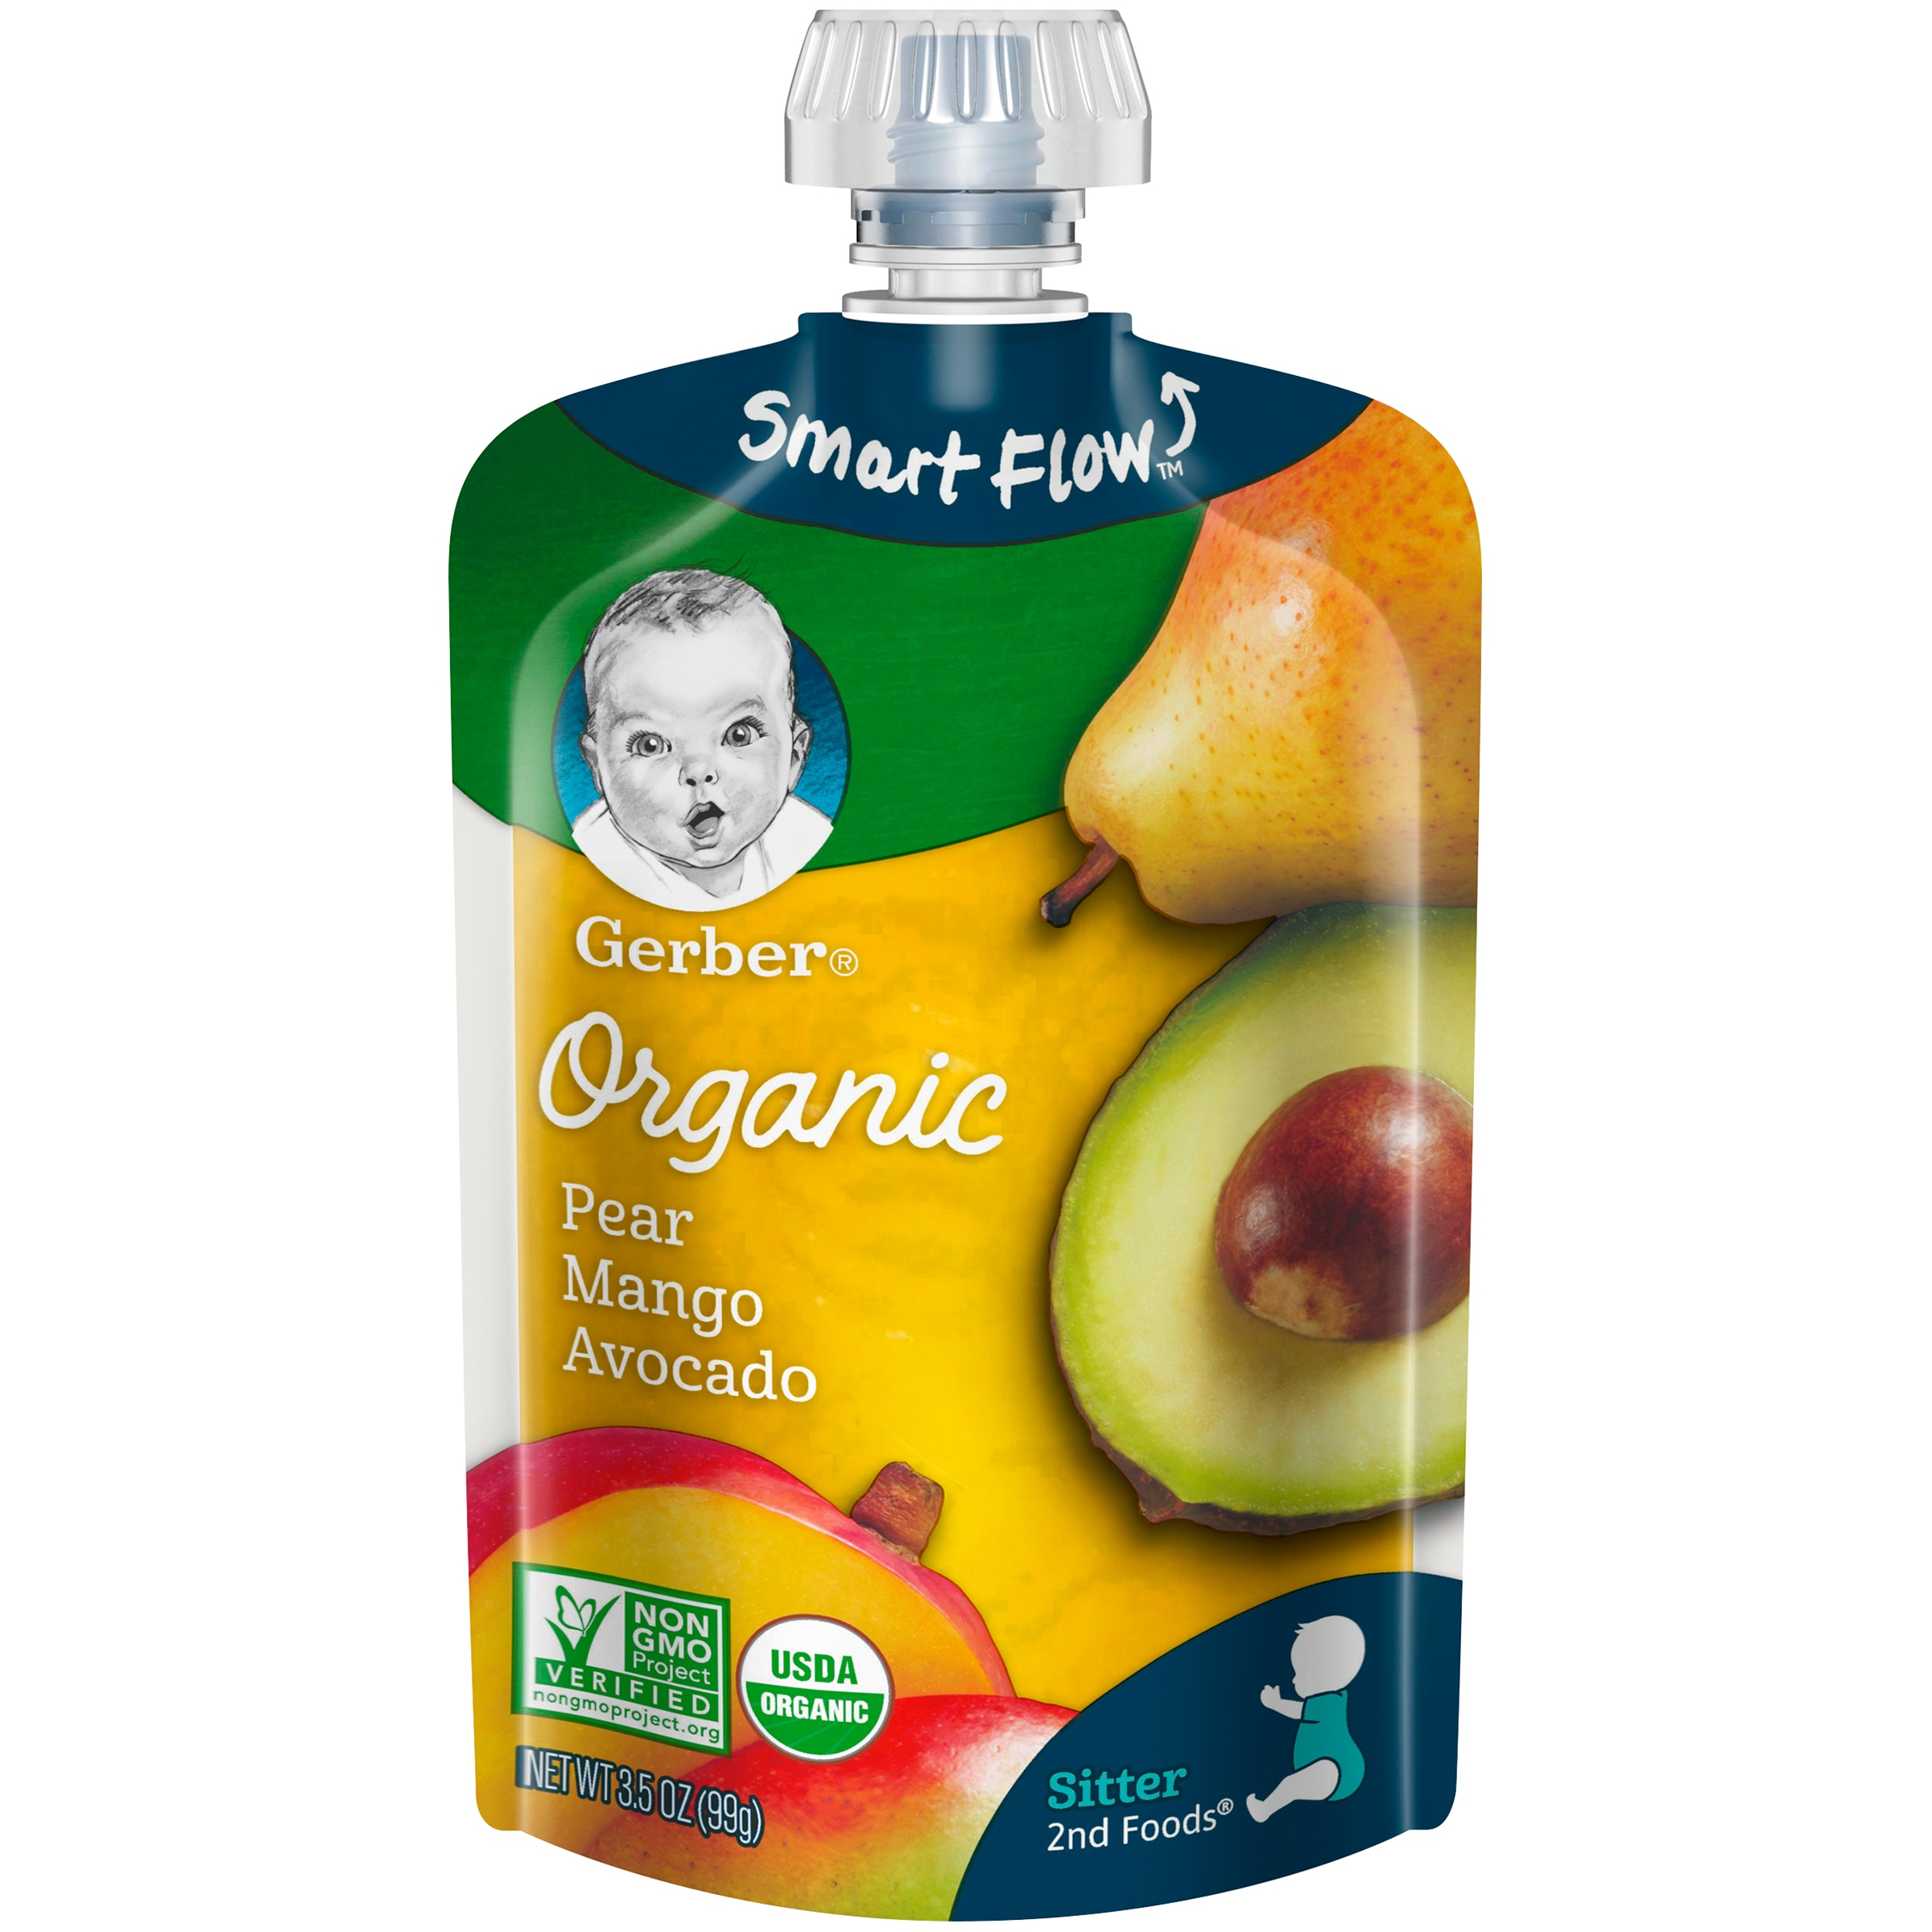 Gerber 2nd Foods Organic Baby Food, Pear Mango Avocado, 3.5 oz. Pouch (Pack of 12) by Gerber